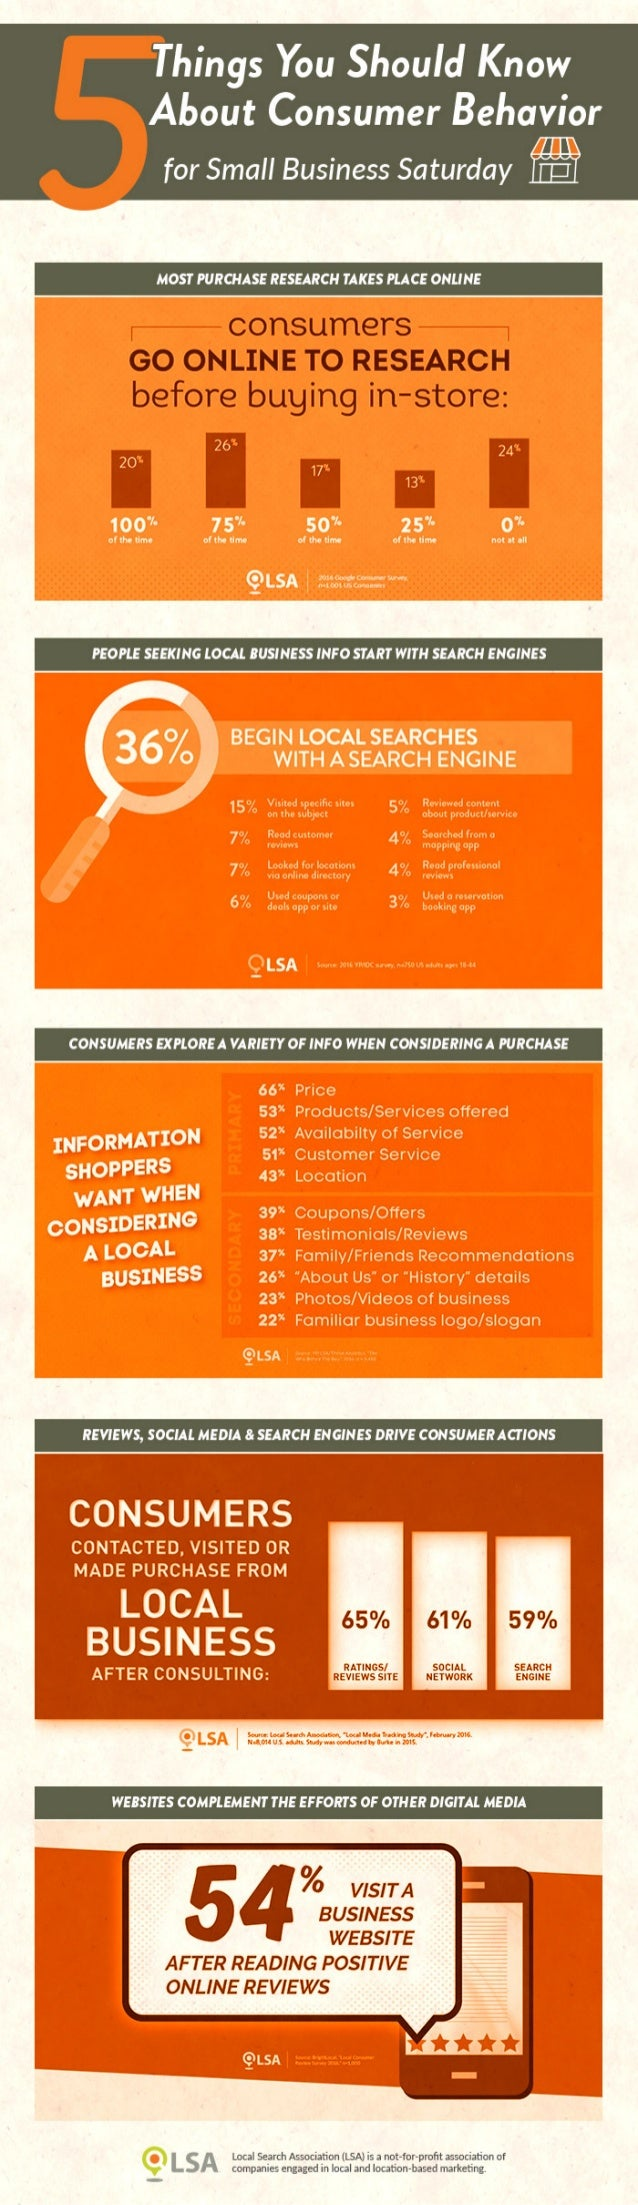 Infographic: 5 Consumer Insights for Small Business Saturday